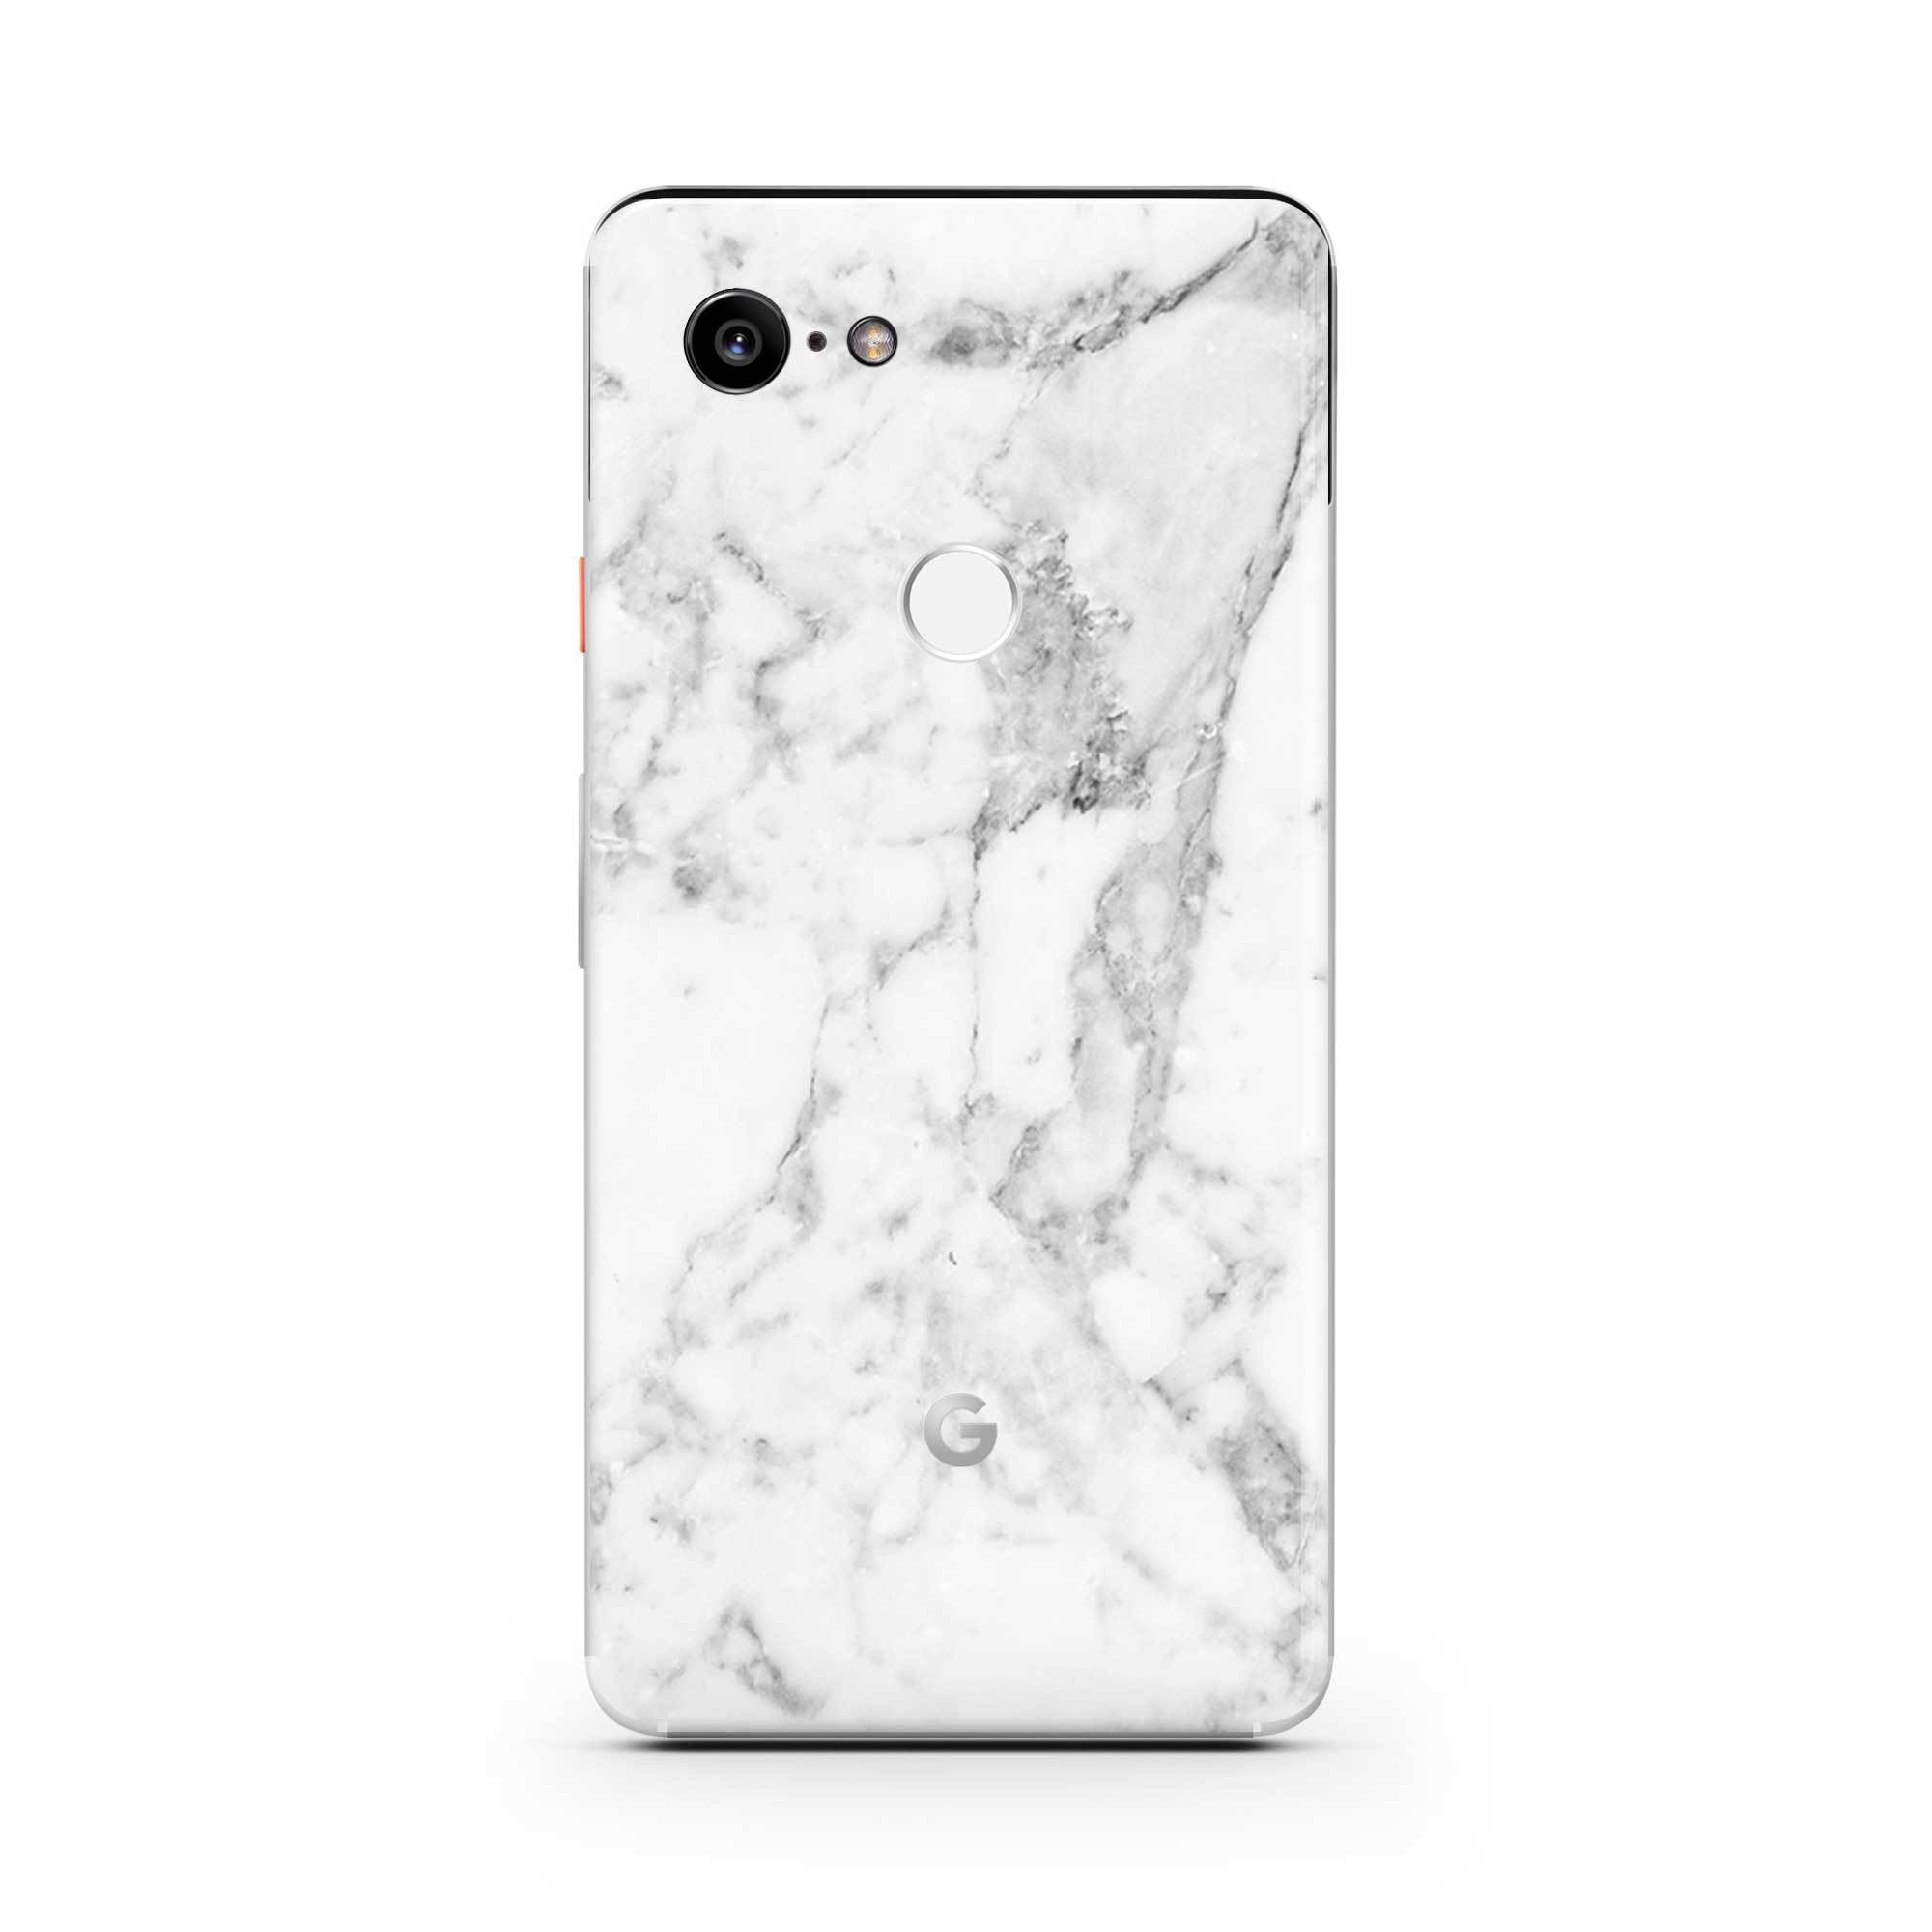 White Marble Pixel 3a Skin + Case